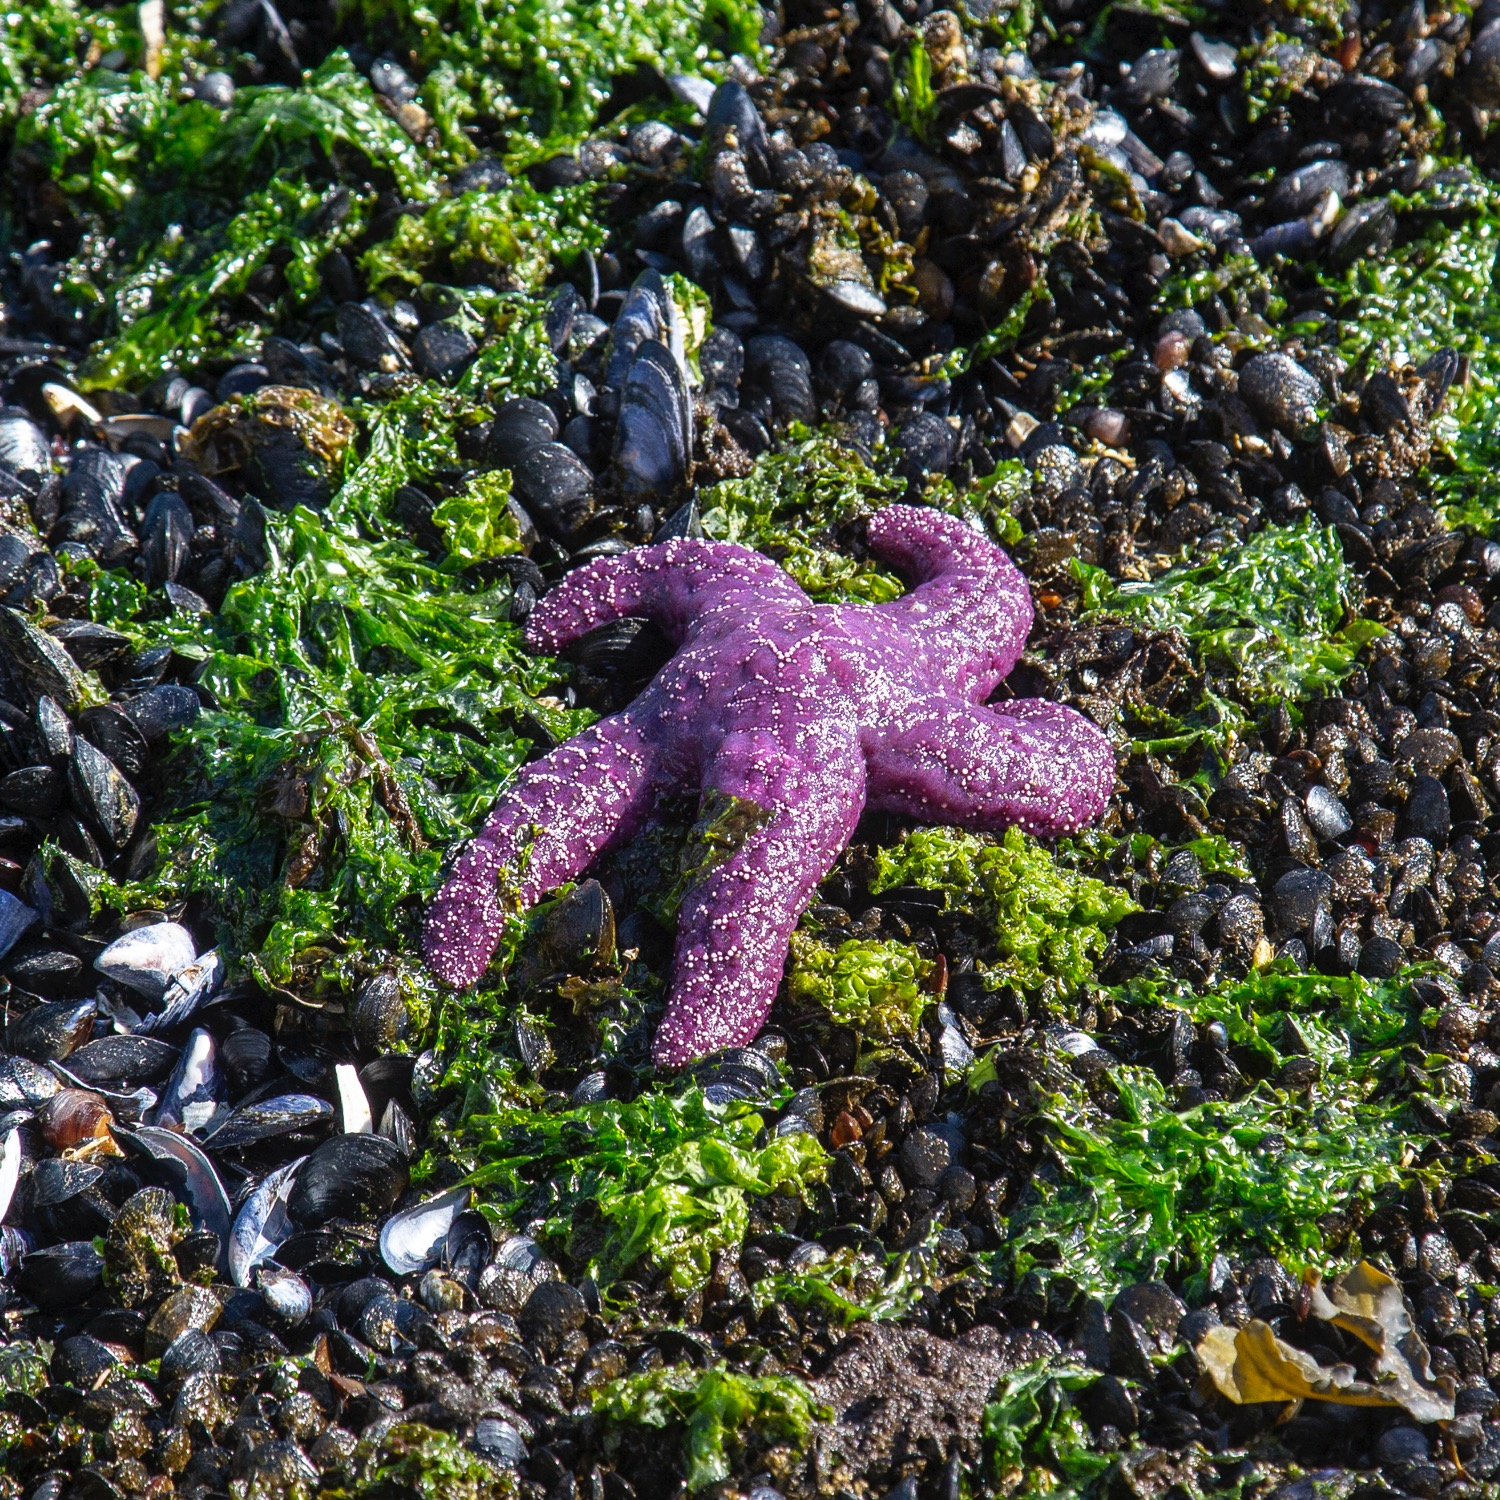 Exploring the tidal pools. The tide was way out, and this purple sea star was sitting up on the rocks